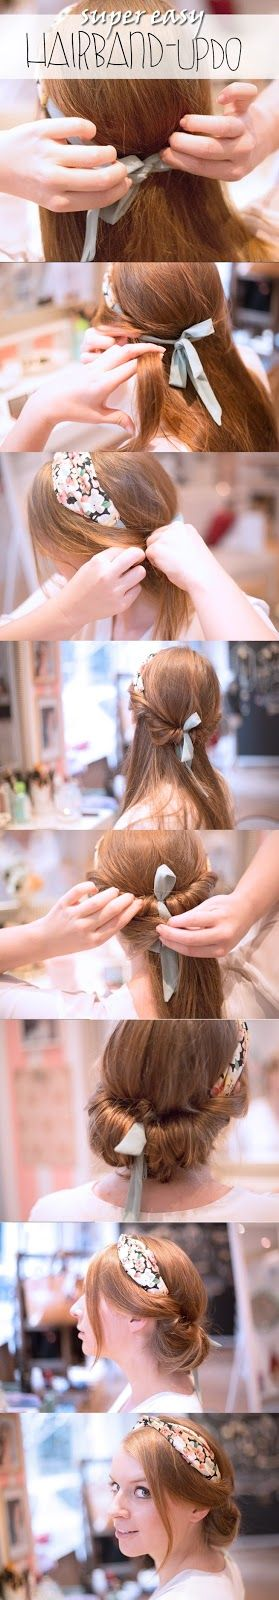 {Frisurentutorial mit Ohh Lala} super easy Hairband Updo